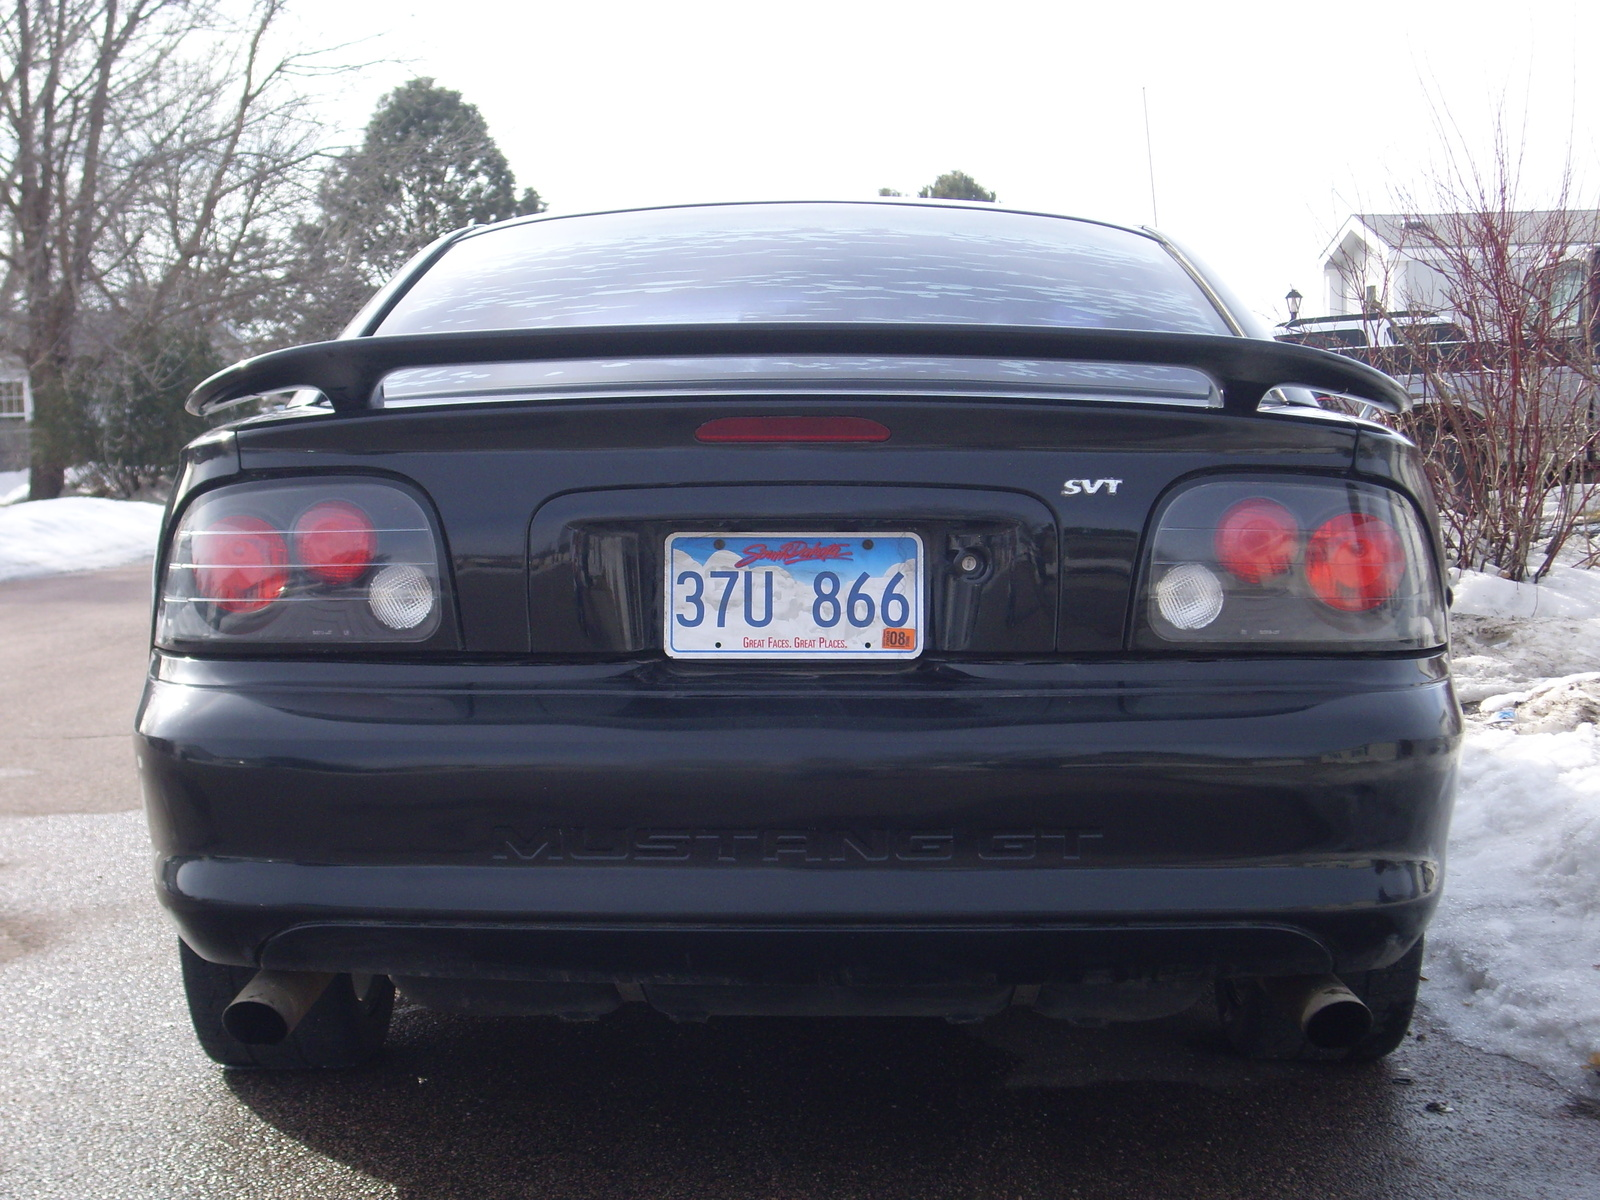 1995 Ford Mustang 2 Dr GT Coupe picture